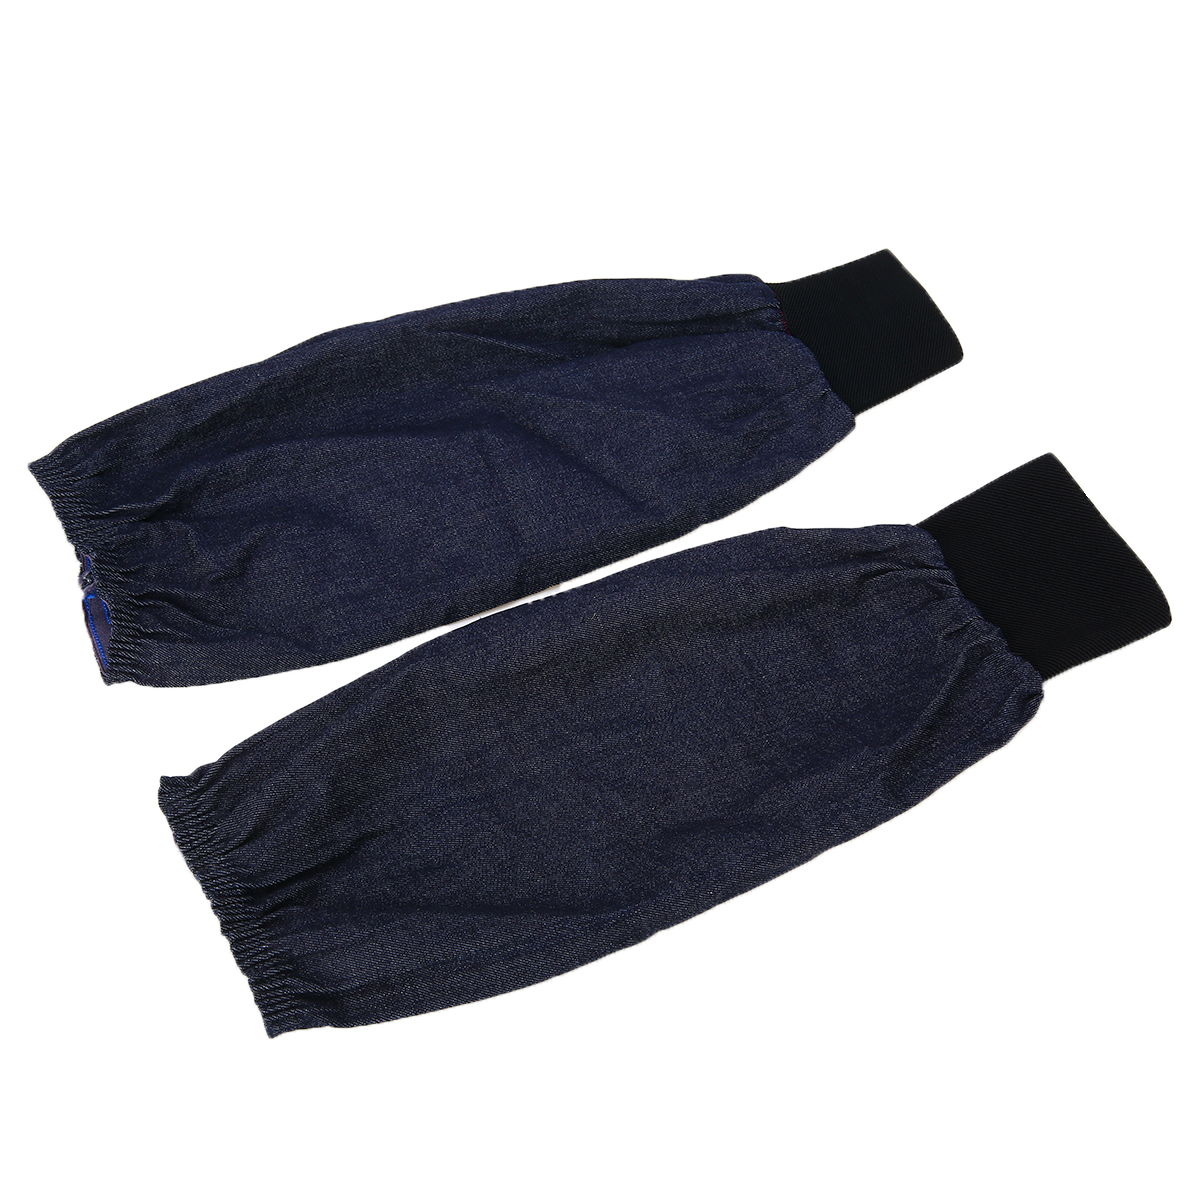 1 Pair Portable Welding Arm Sleeves Denim Working Sleeves Cut Resistant Heat Protection Welder Hand Arm Protective Sleeves